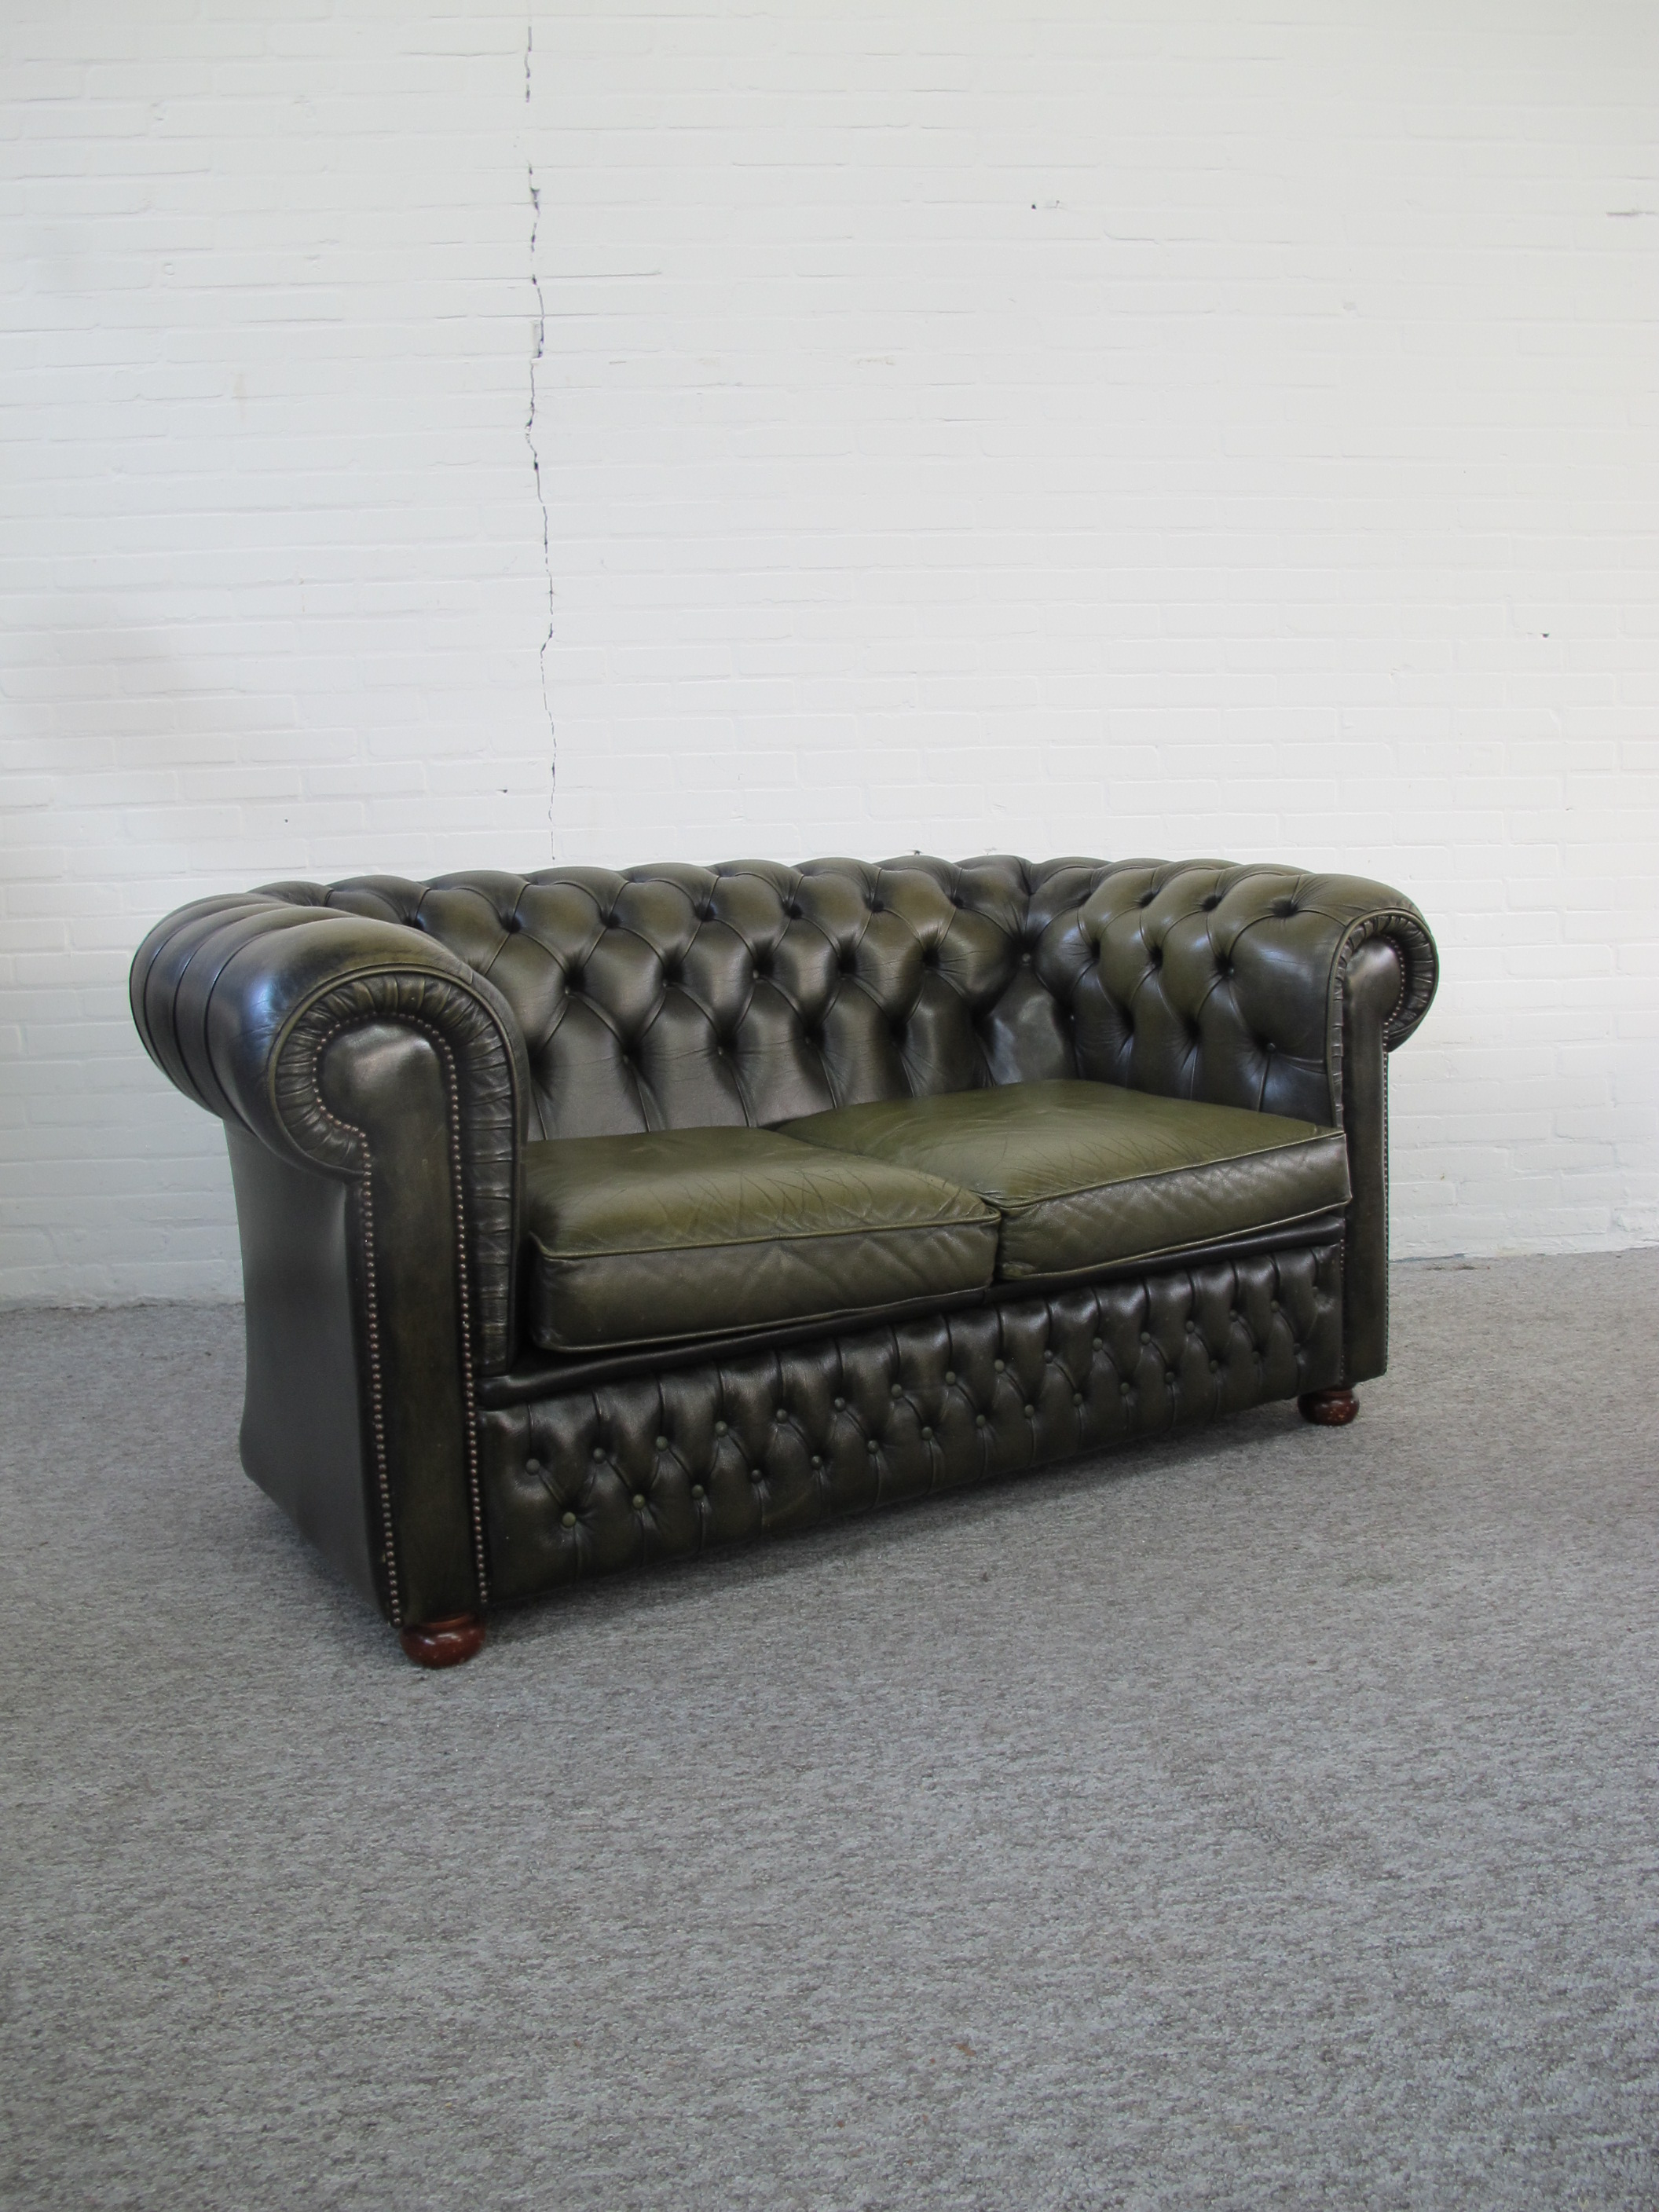 Bank sofa Originele Engelse Chesterfield vintage midcentury